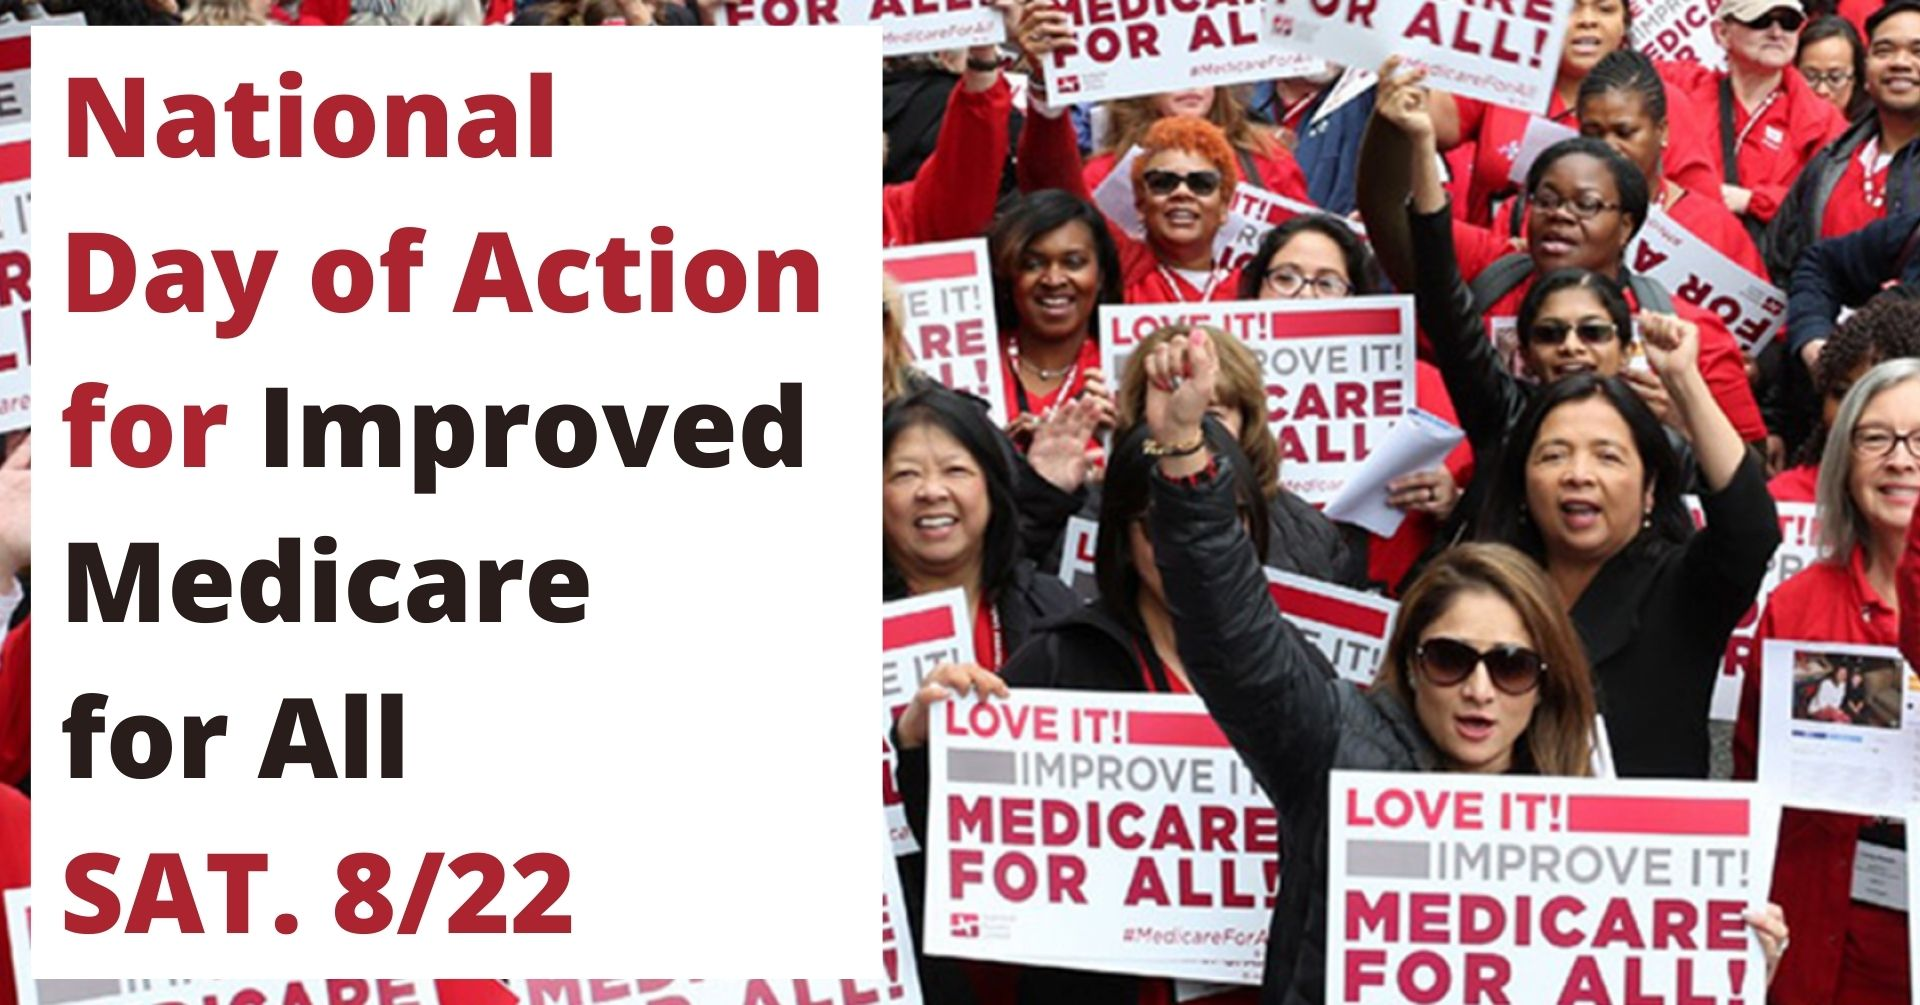 Photo of nurses, healthcare workers and improved medicare for all supporters, many with fists in air and look like they are chanting, are holding National Nurses United signs that are white with red words on first line \